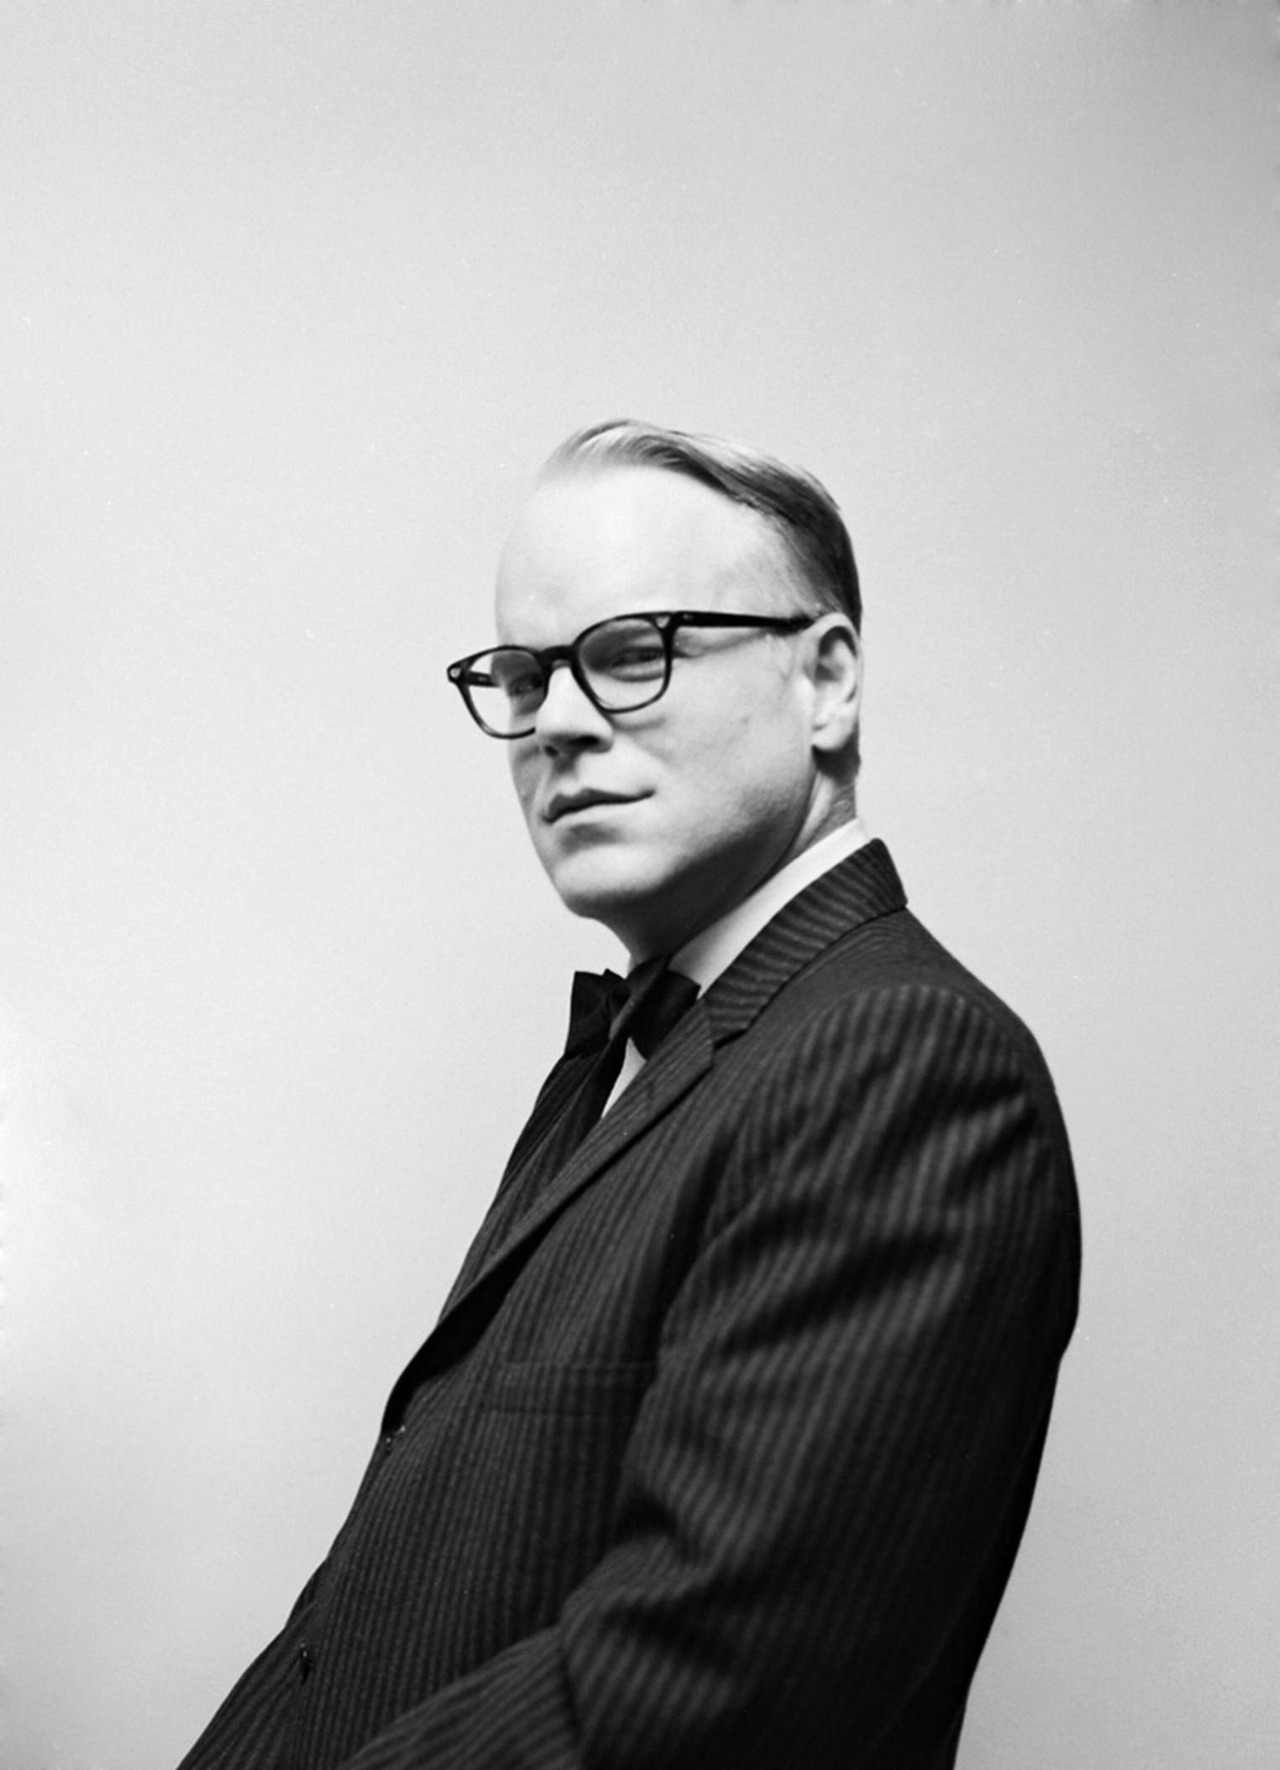 Phillip Seymour Hoffman as Truman Capote, 2005